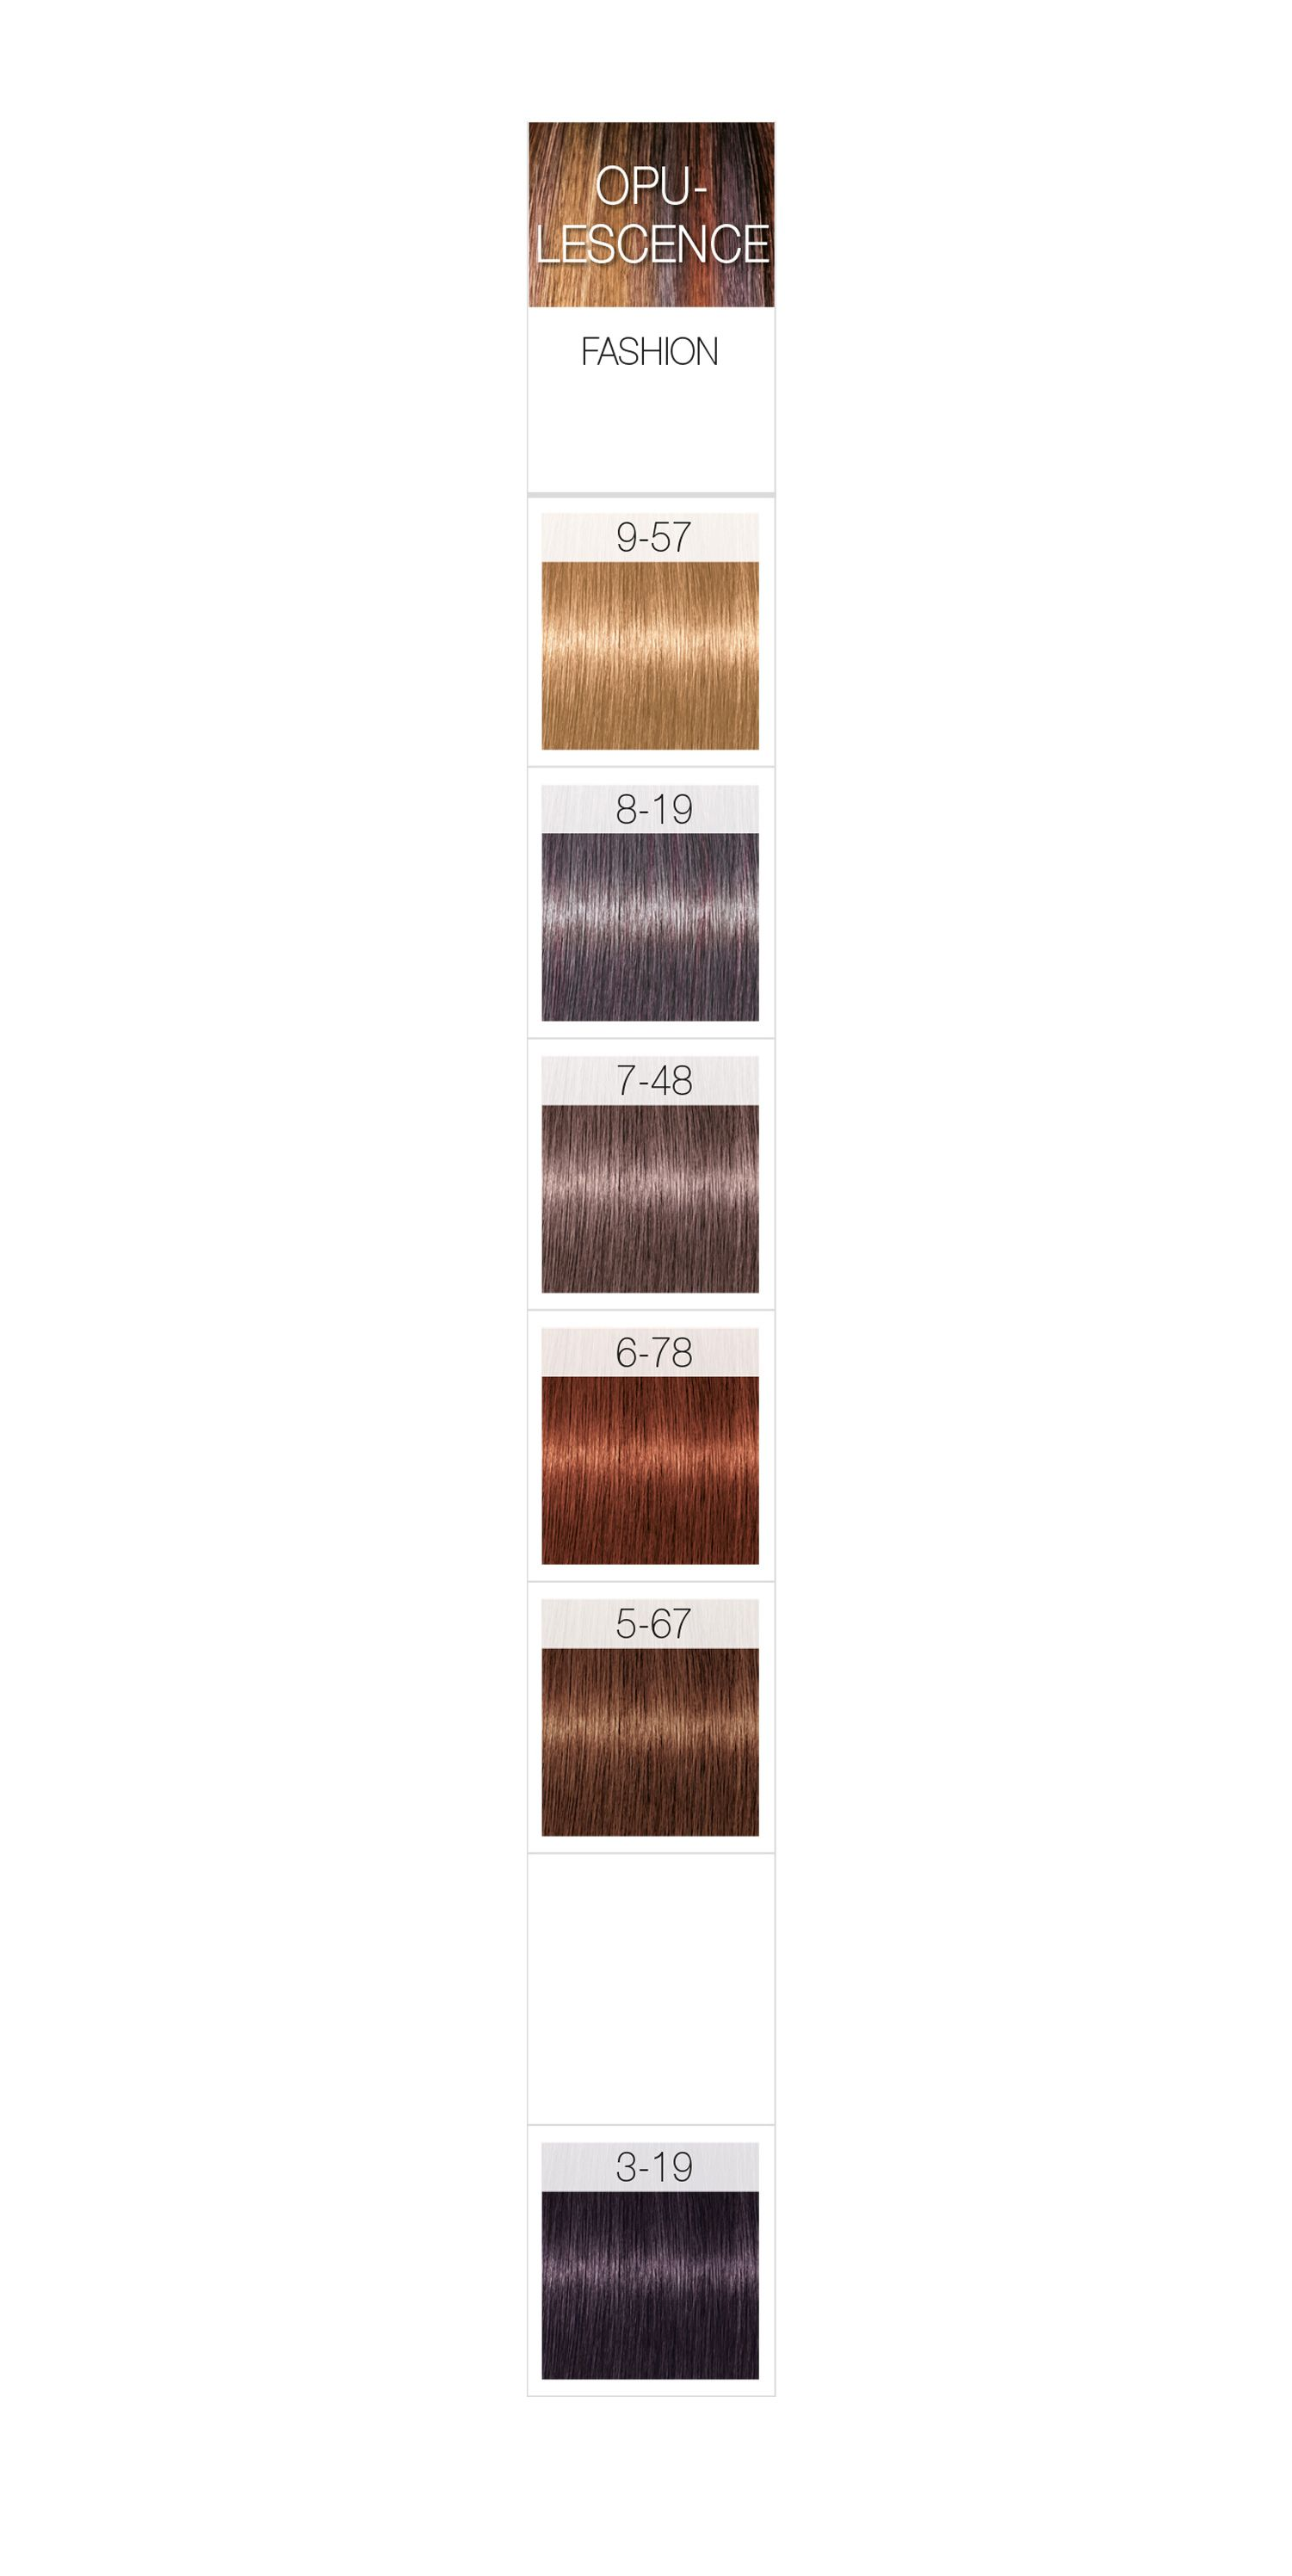 Schwarzkopf Professional Igora Royal Opulescence Permanent Color Creme Color Chart Schwarzkopf Hair Color Schwarzkopf Hair Color Chart Hair Color Chart